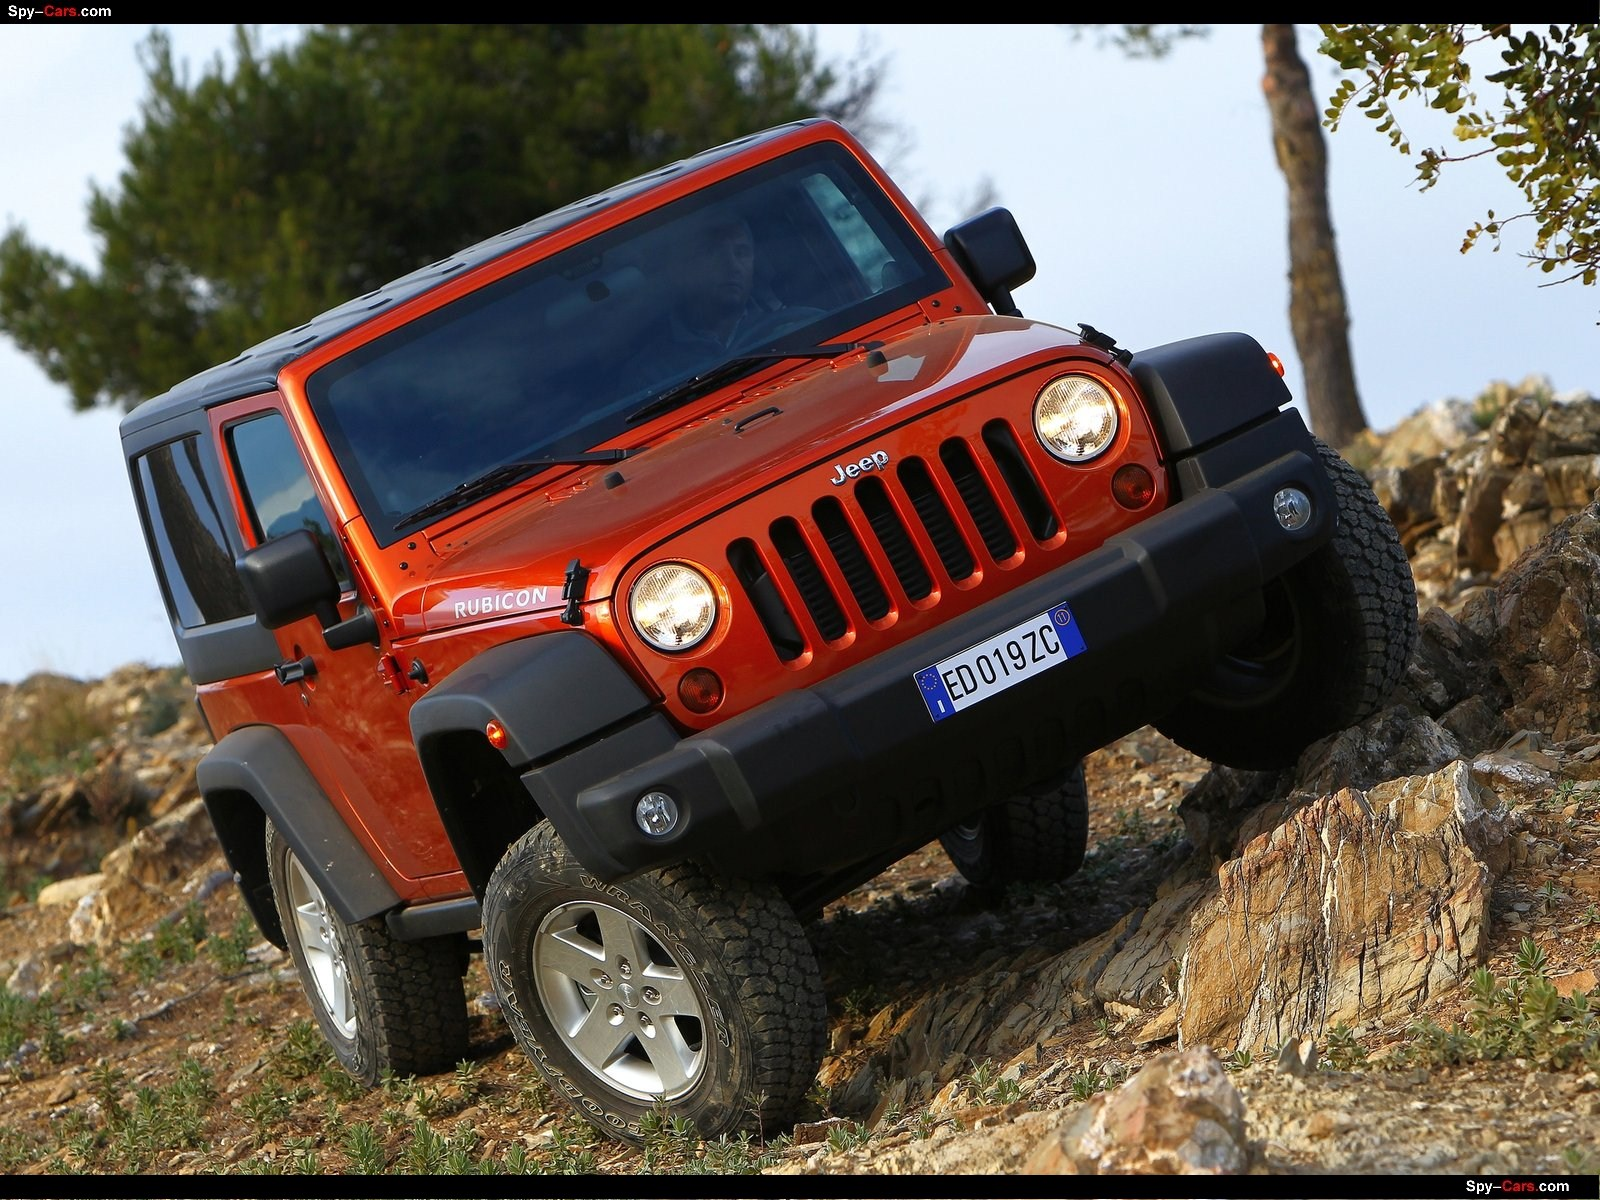 Jeep Auto Twenty First Century Wrangler Powertrain Introduces The All New 36 Liter Pentastar V 6 Petrol Engine That Will Be Equipped On 2012 And Unlimited